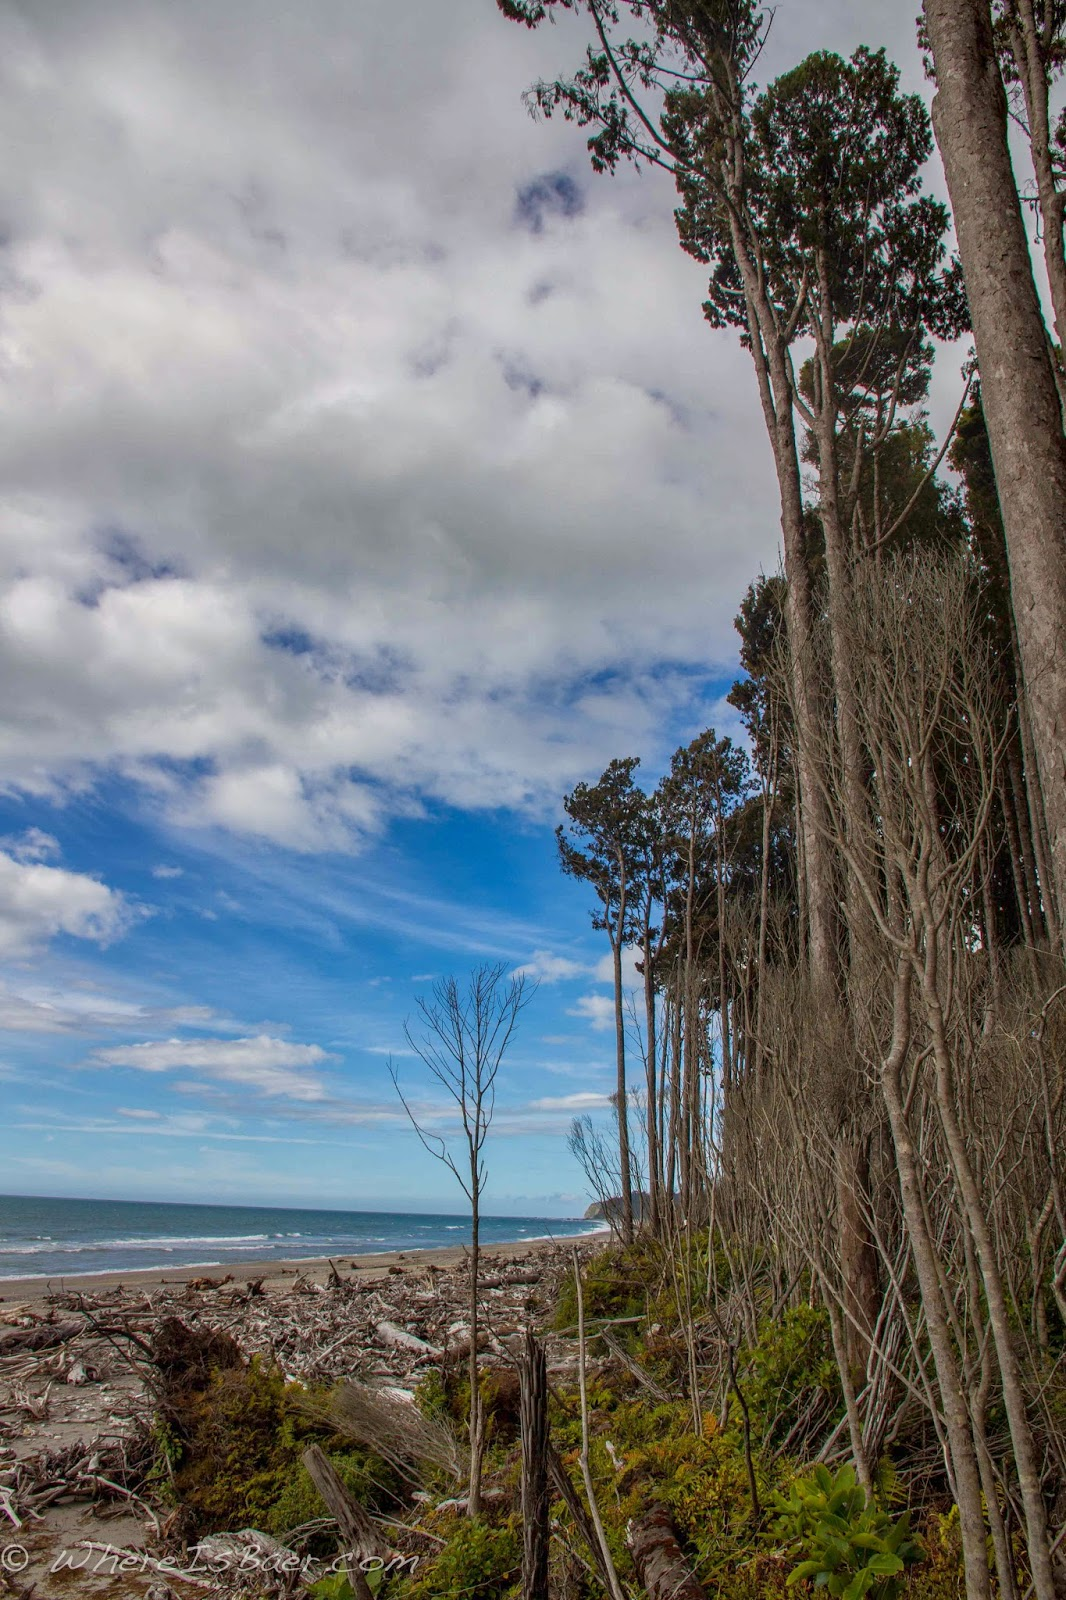 the densely forested New Zealand coast line looking out onto the Tasman Sea, Chris Baer